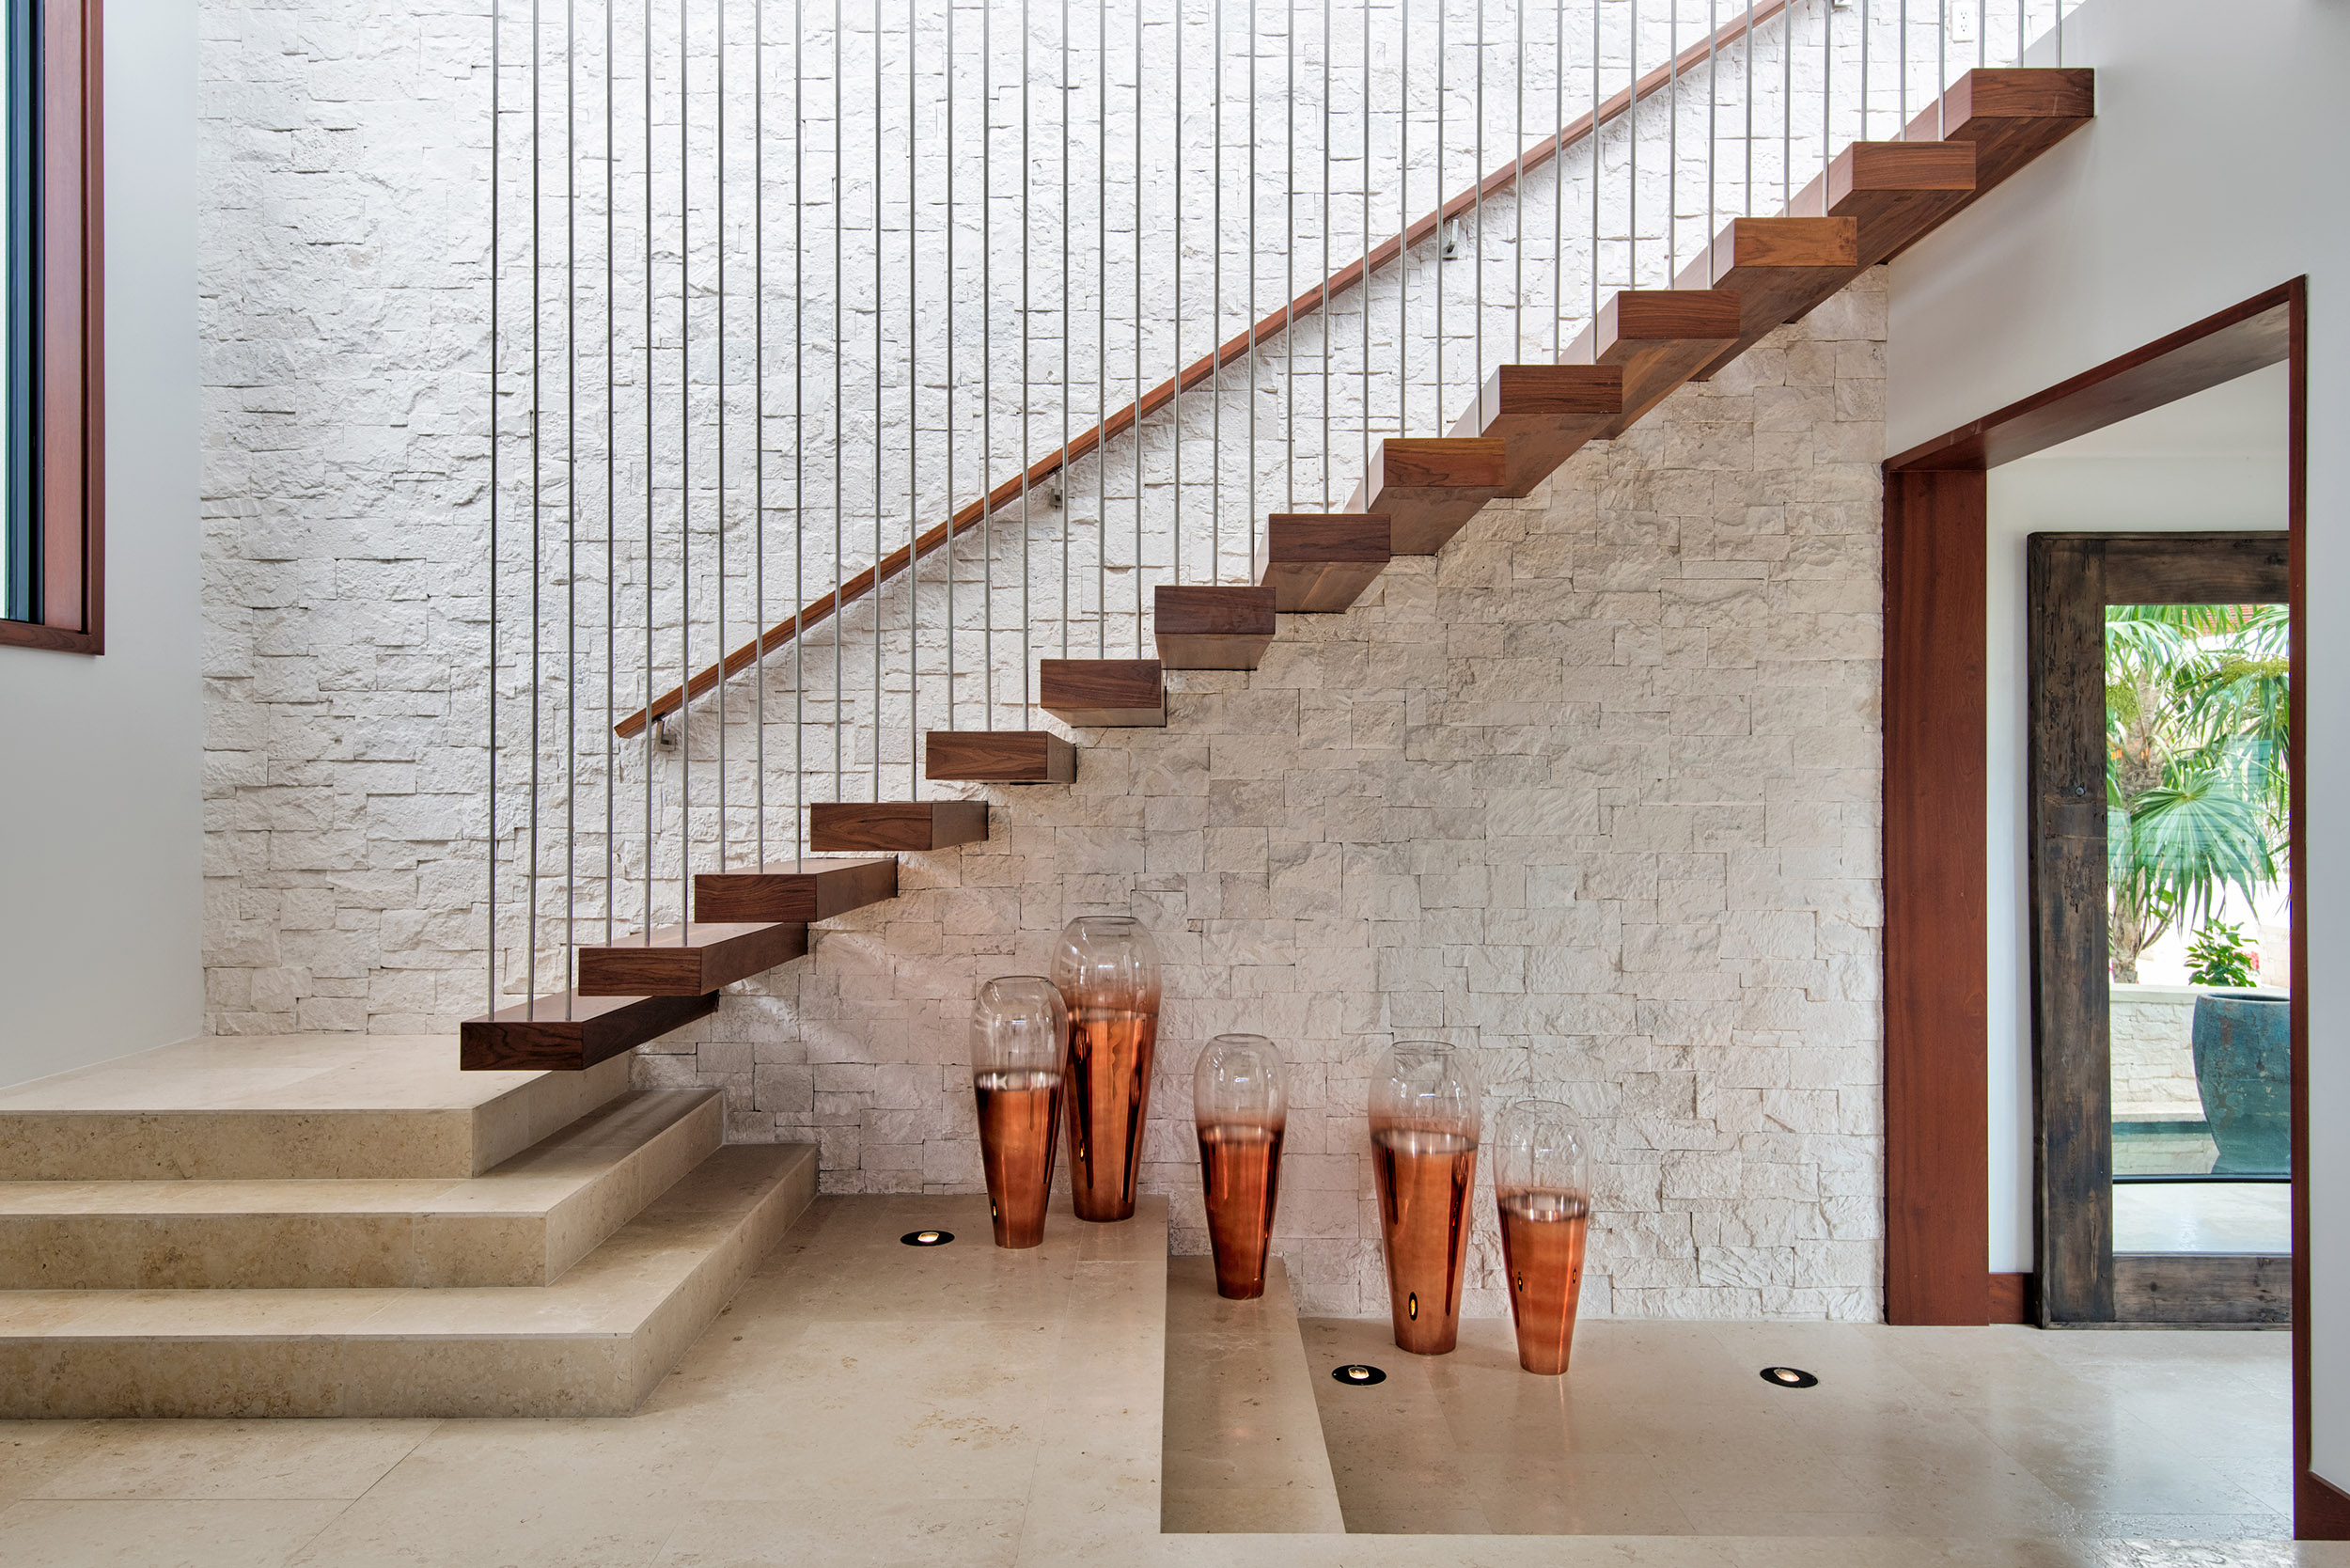 Hawksbill - view of the cantilevered staircase